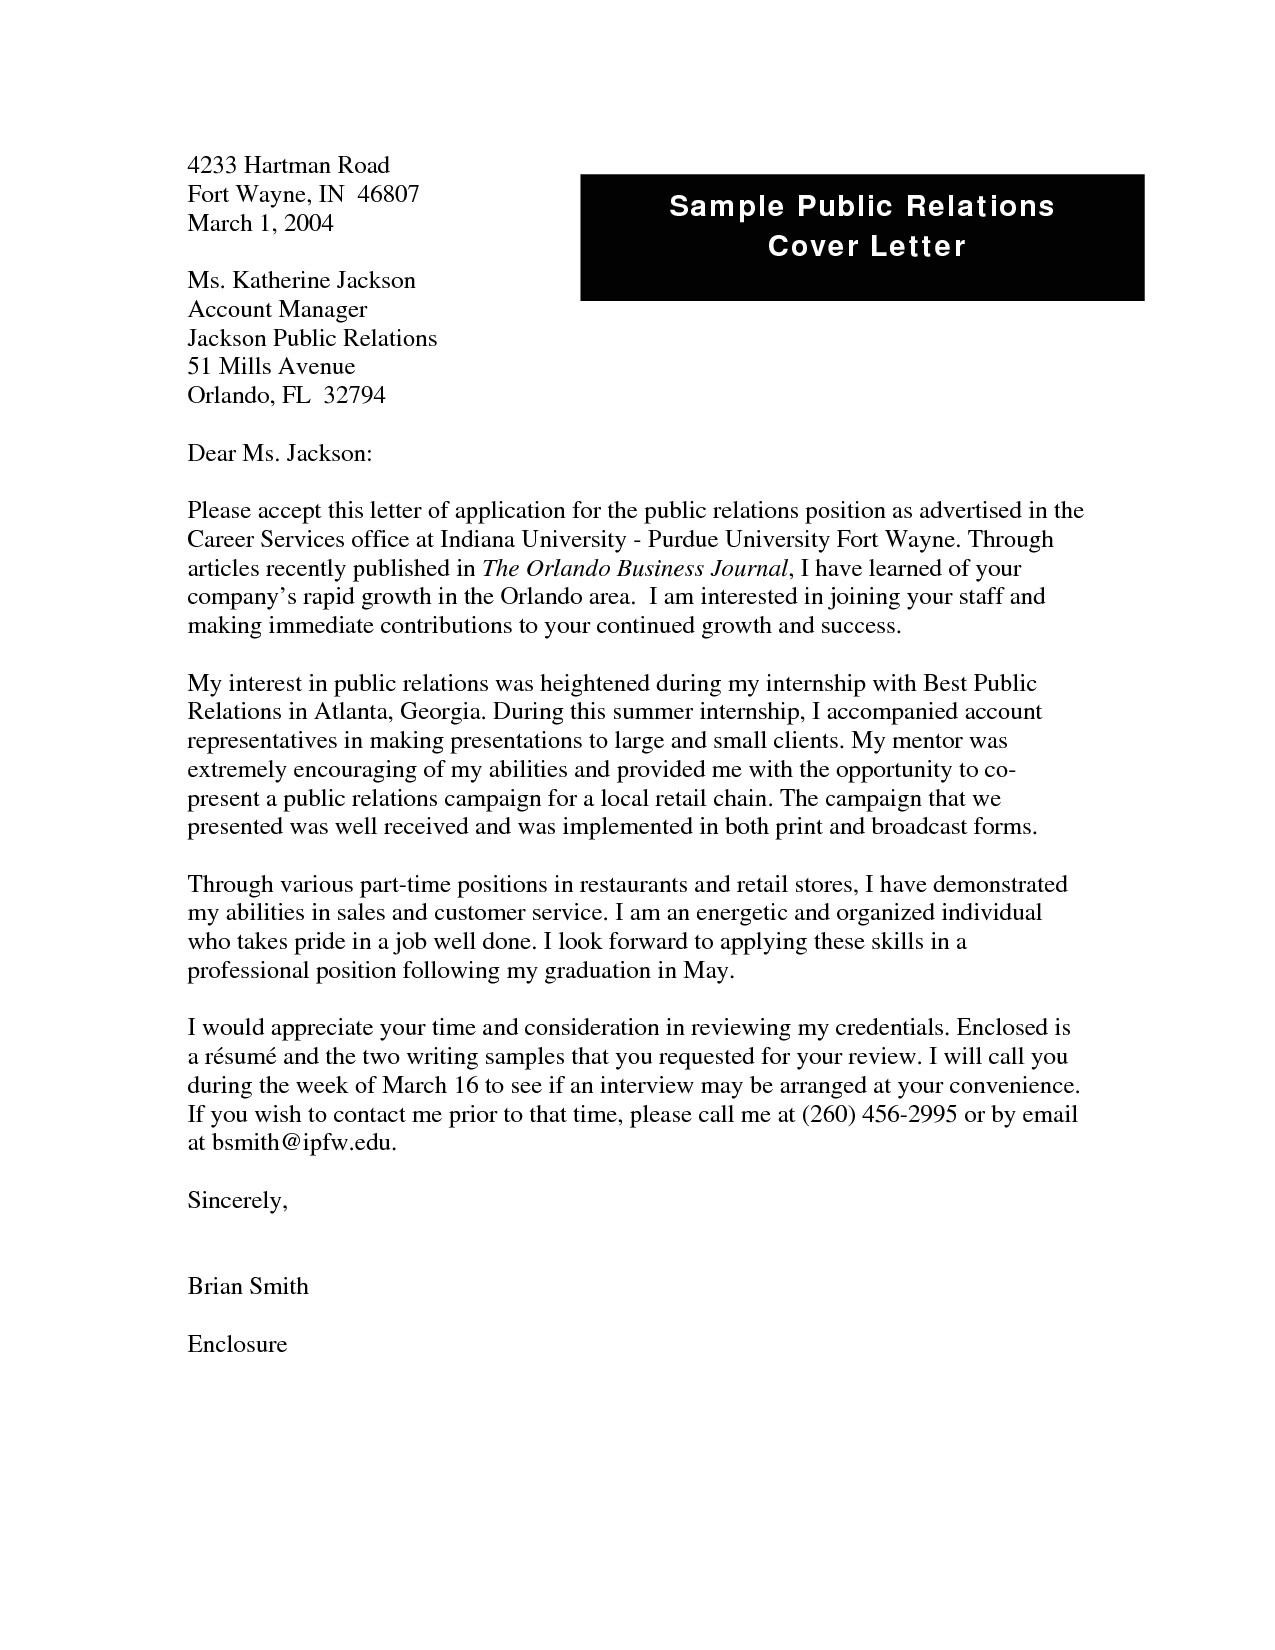 fashion public relations cover letter examples